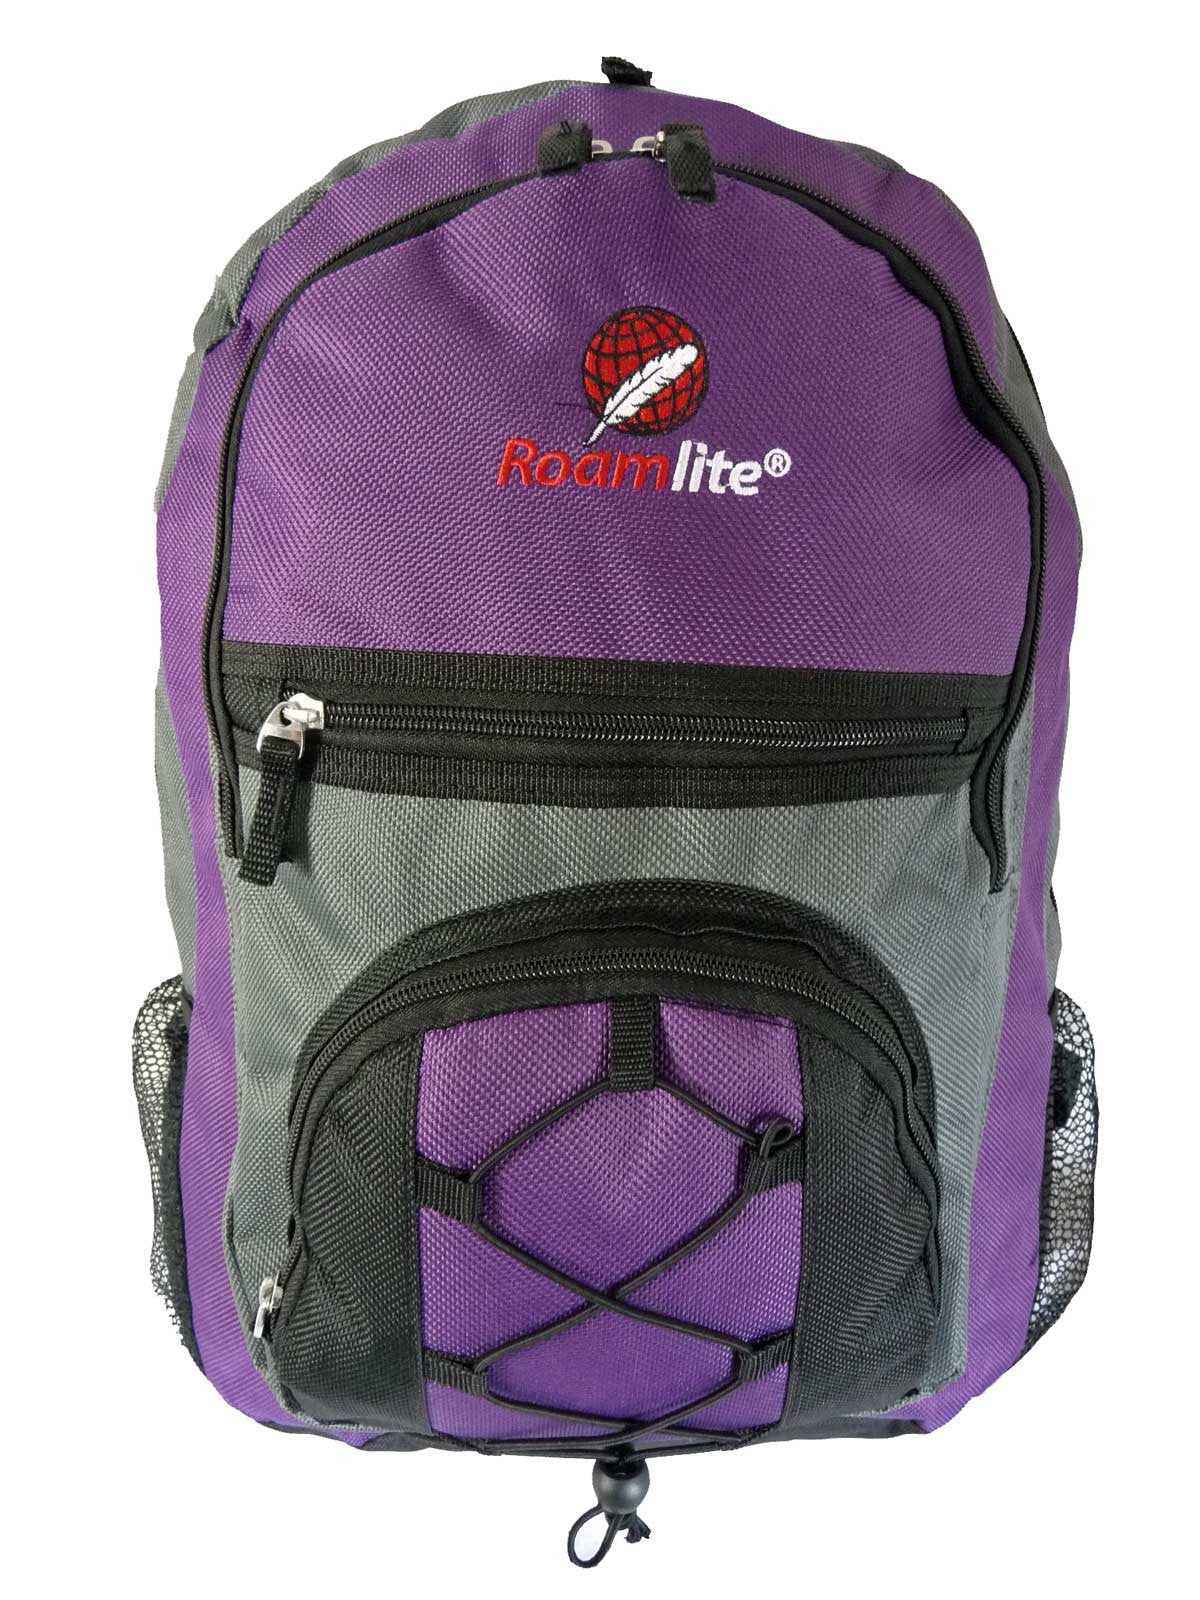 Kids School Bags RL37M Purple Front View